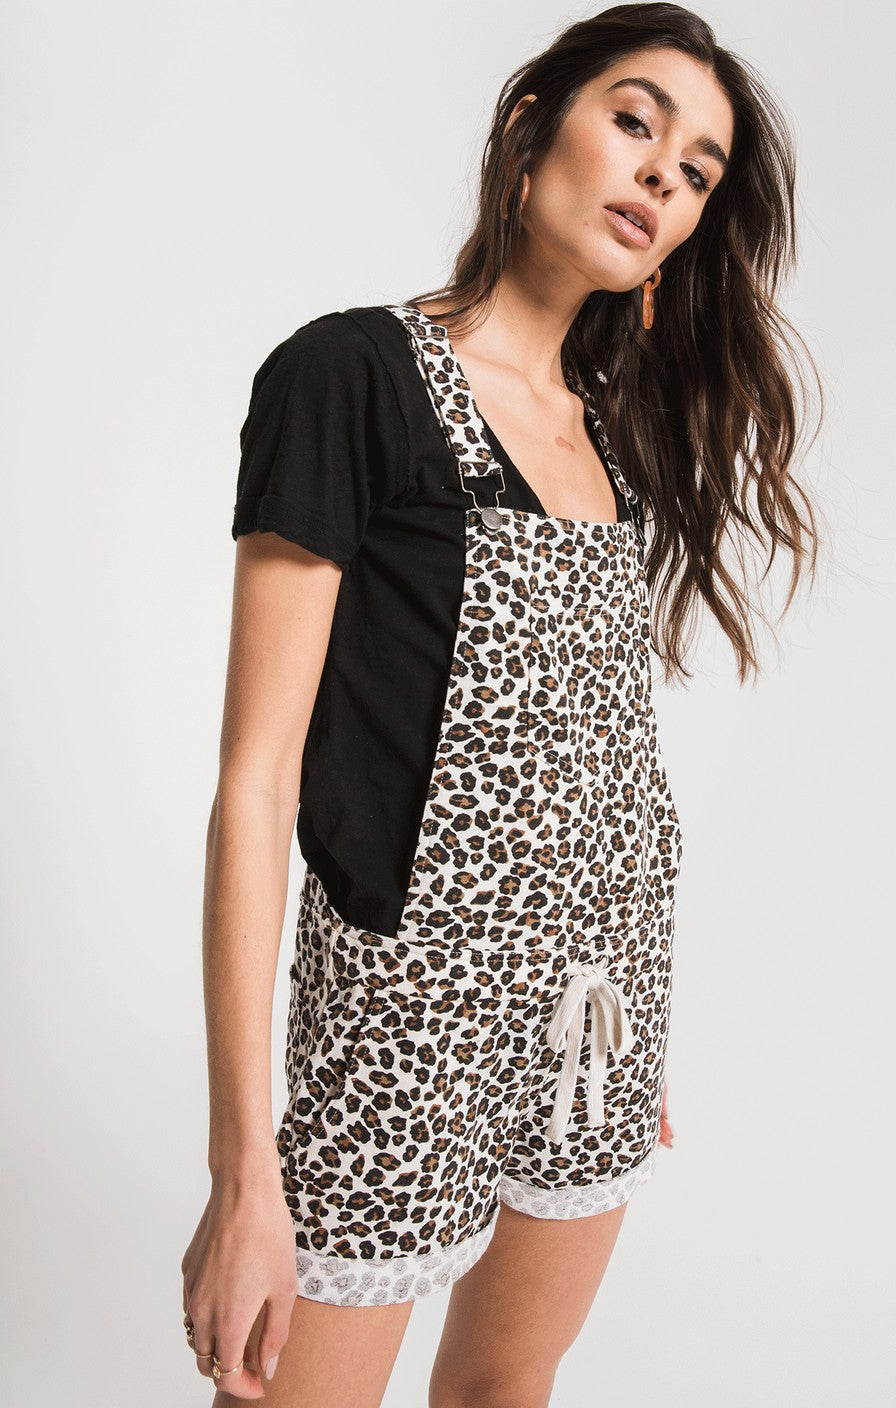 The Multi Leopard Short Overall